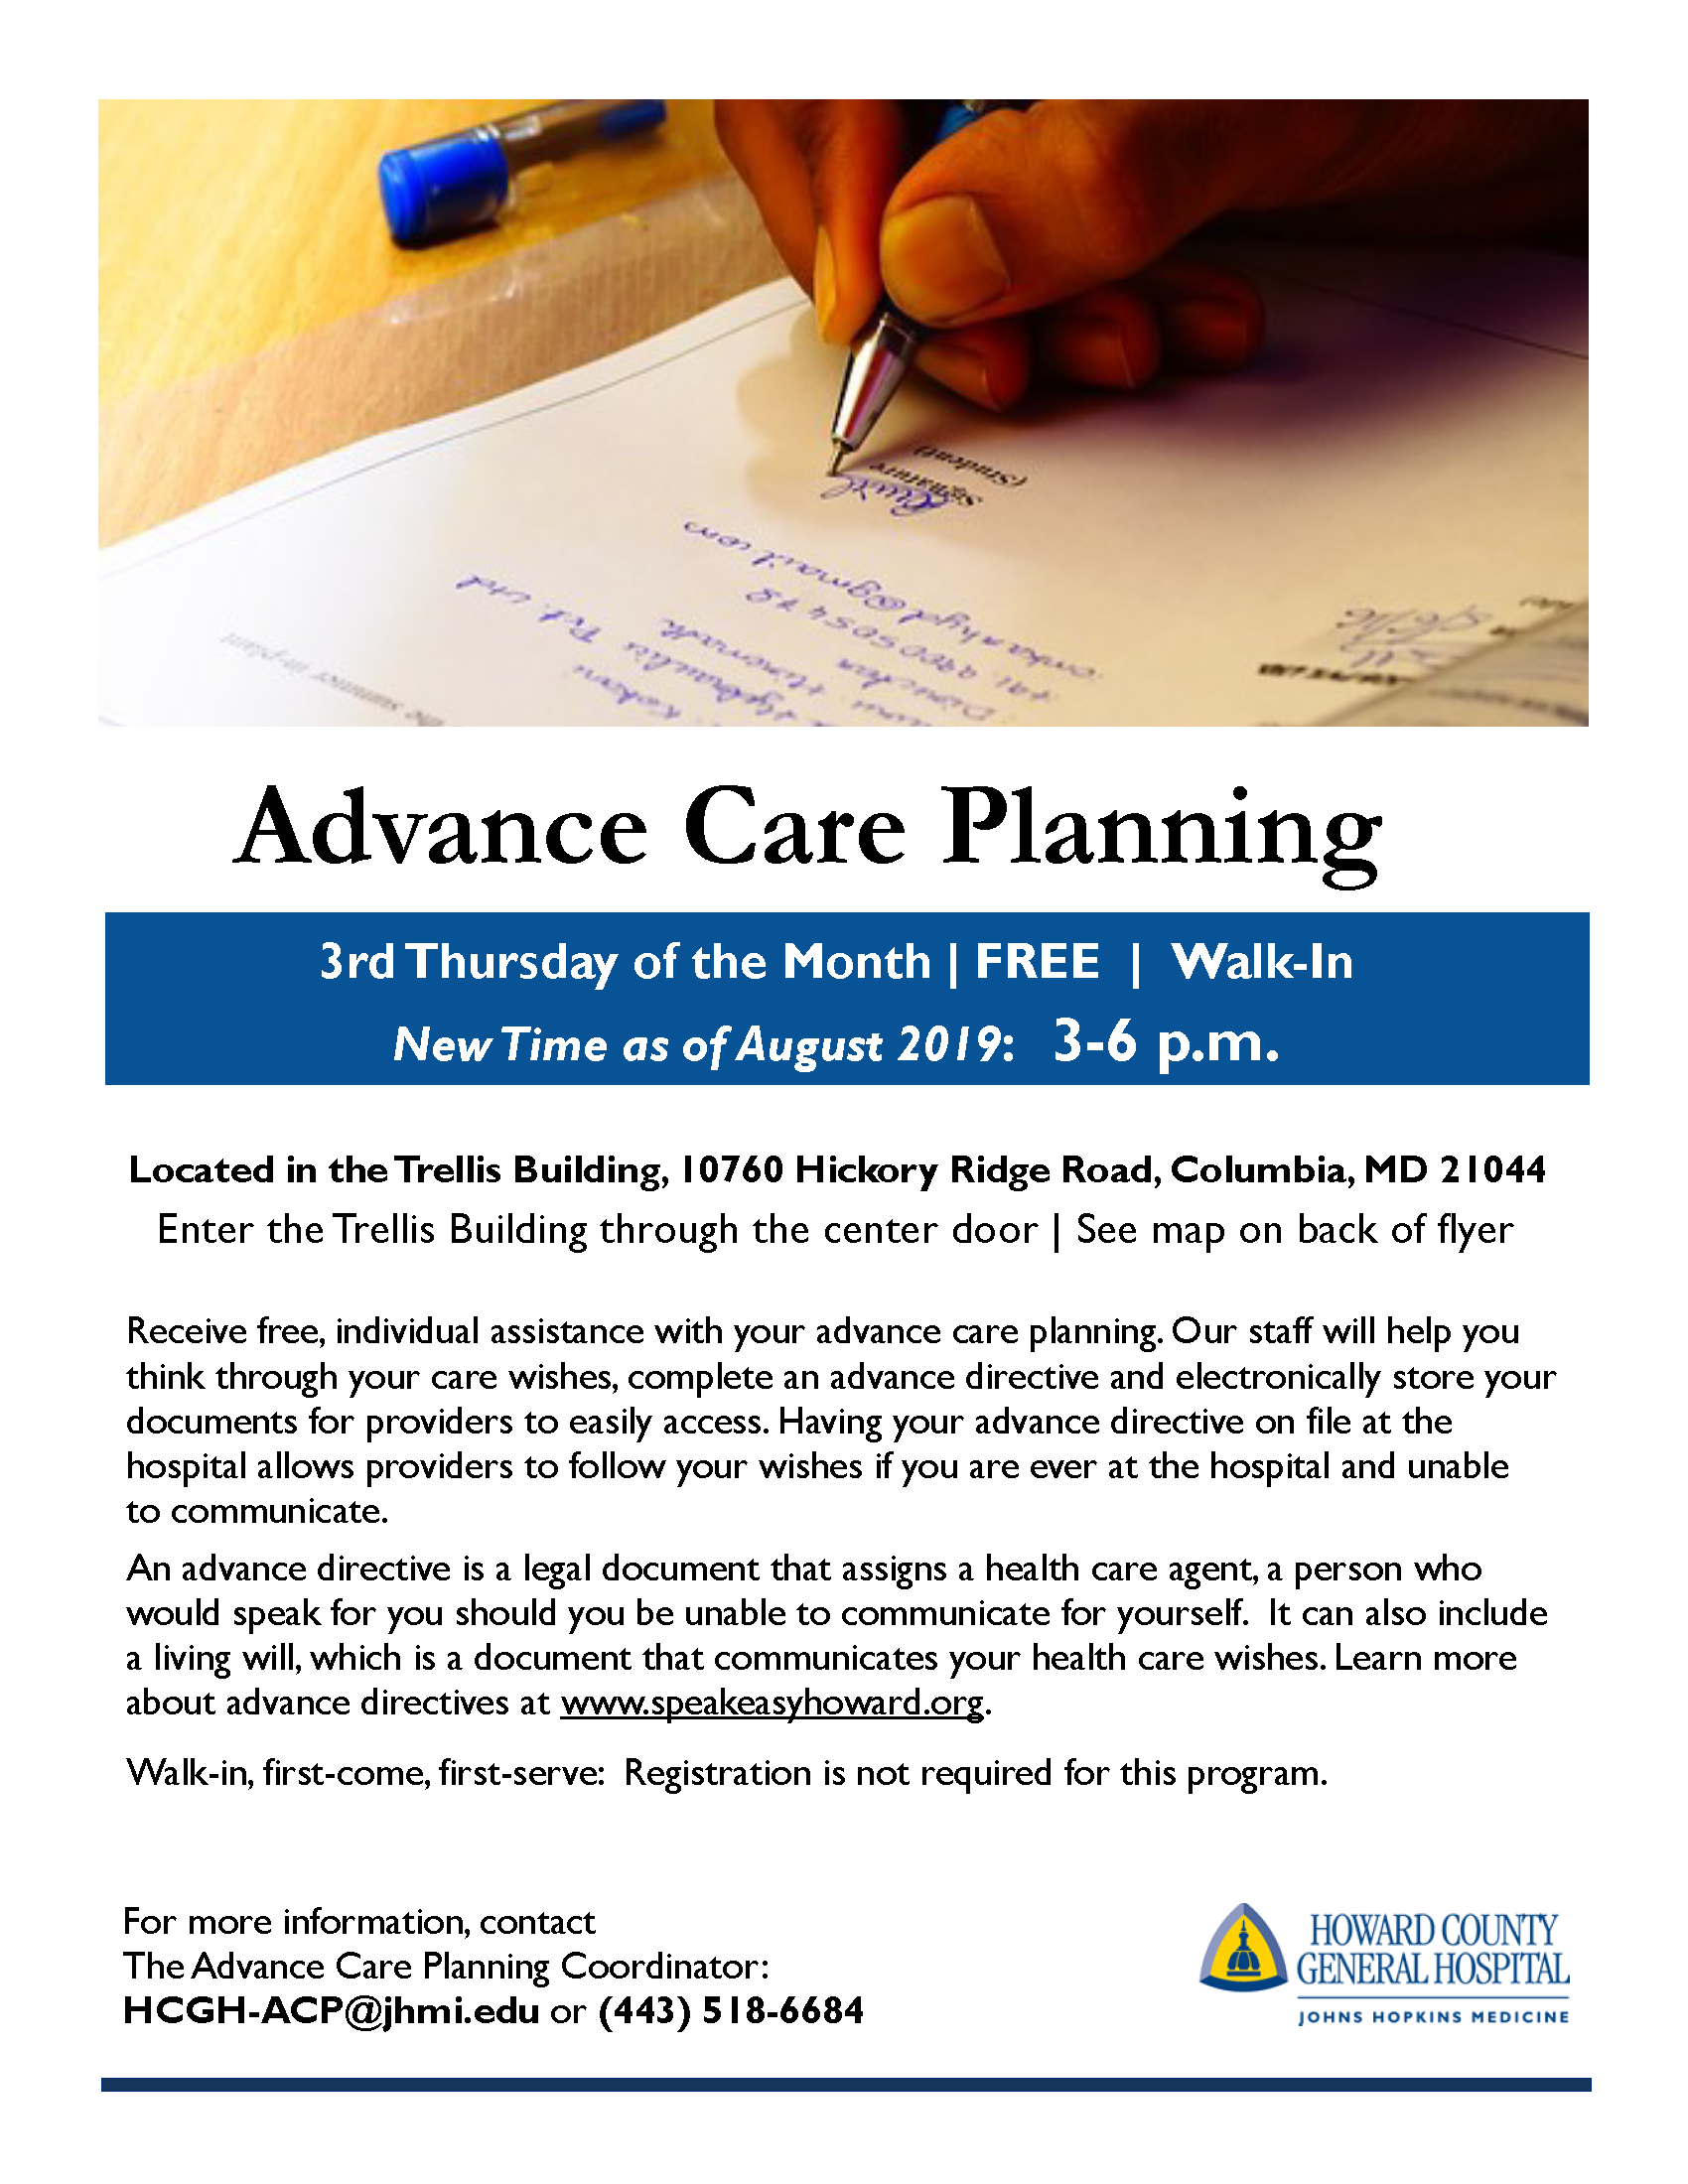 REVISED HCGH Advance Care Planning Office Hours 002